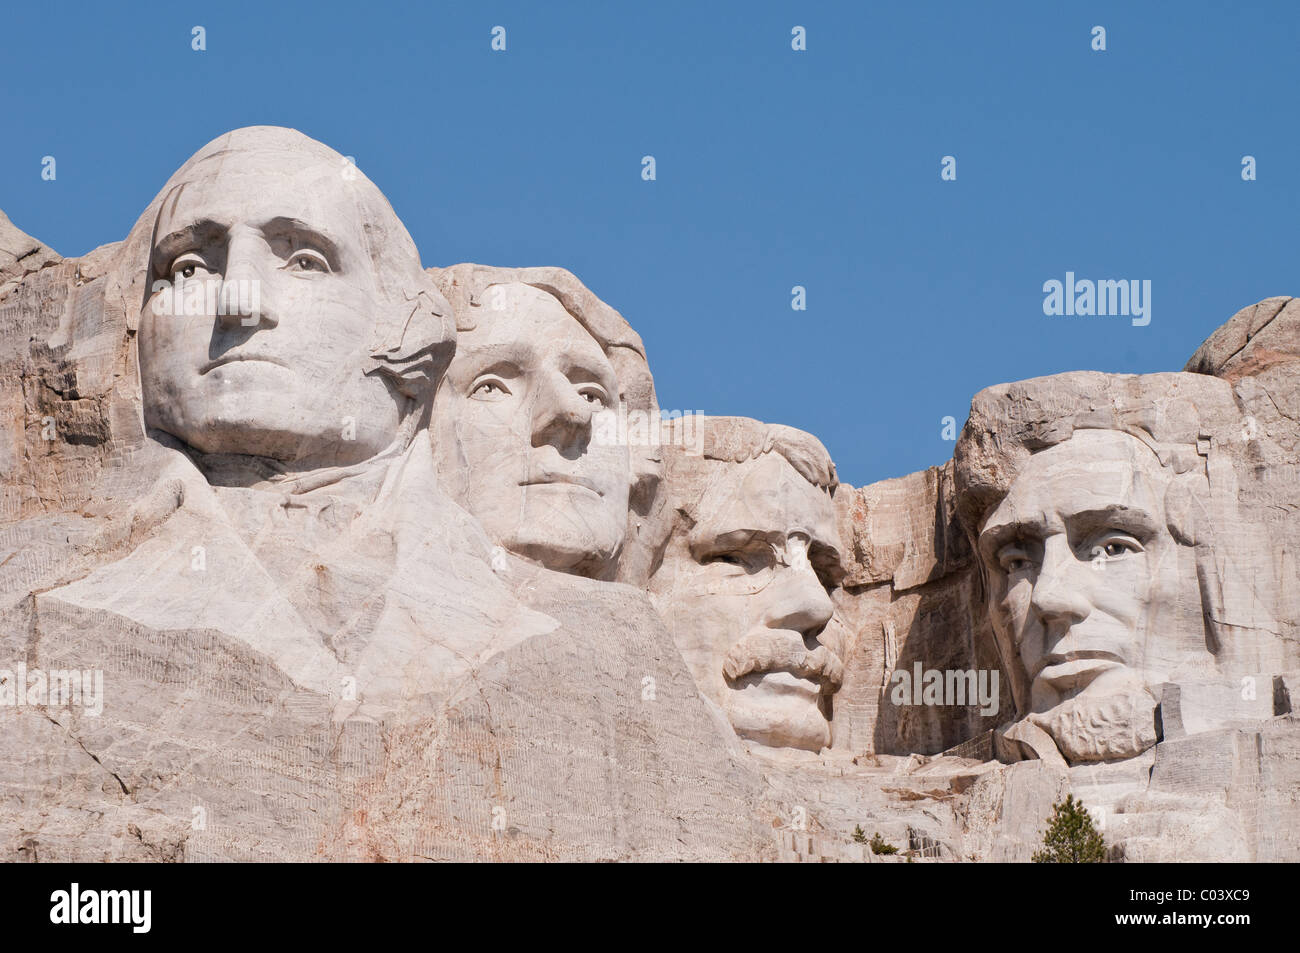 Faces of Presidents at Mount Rushmore - Stock Image